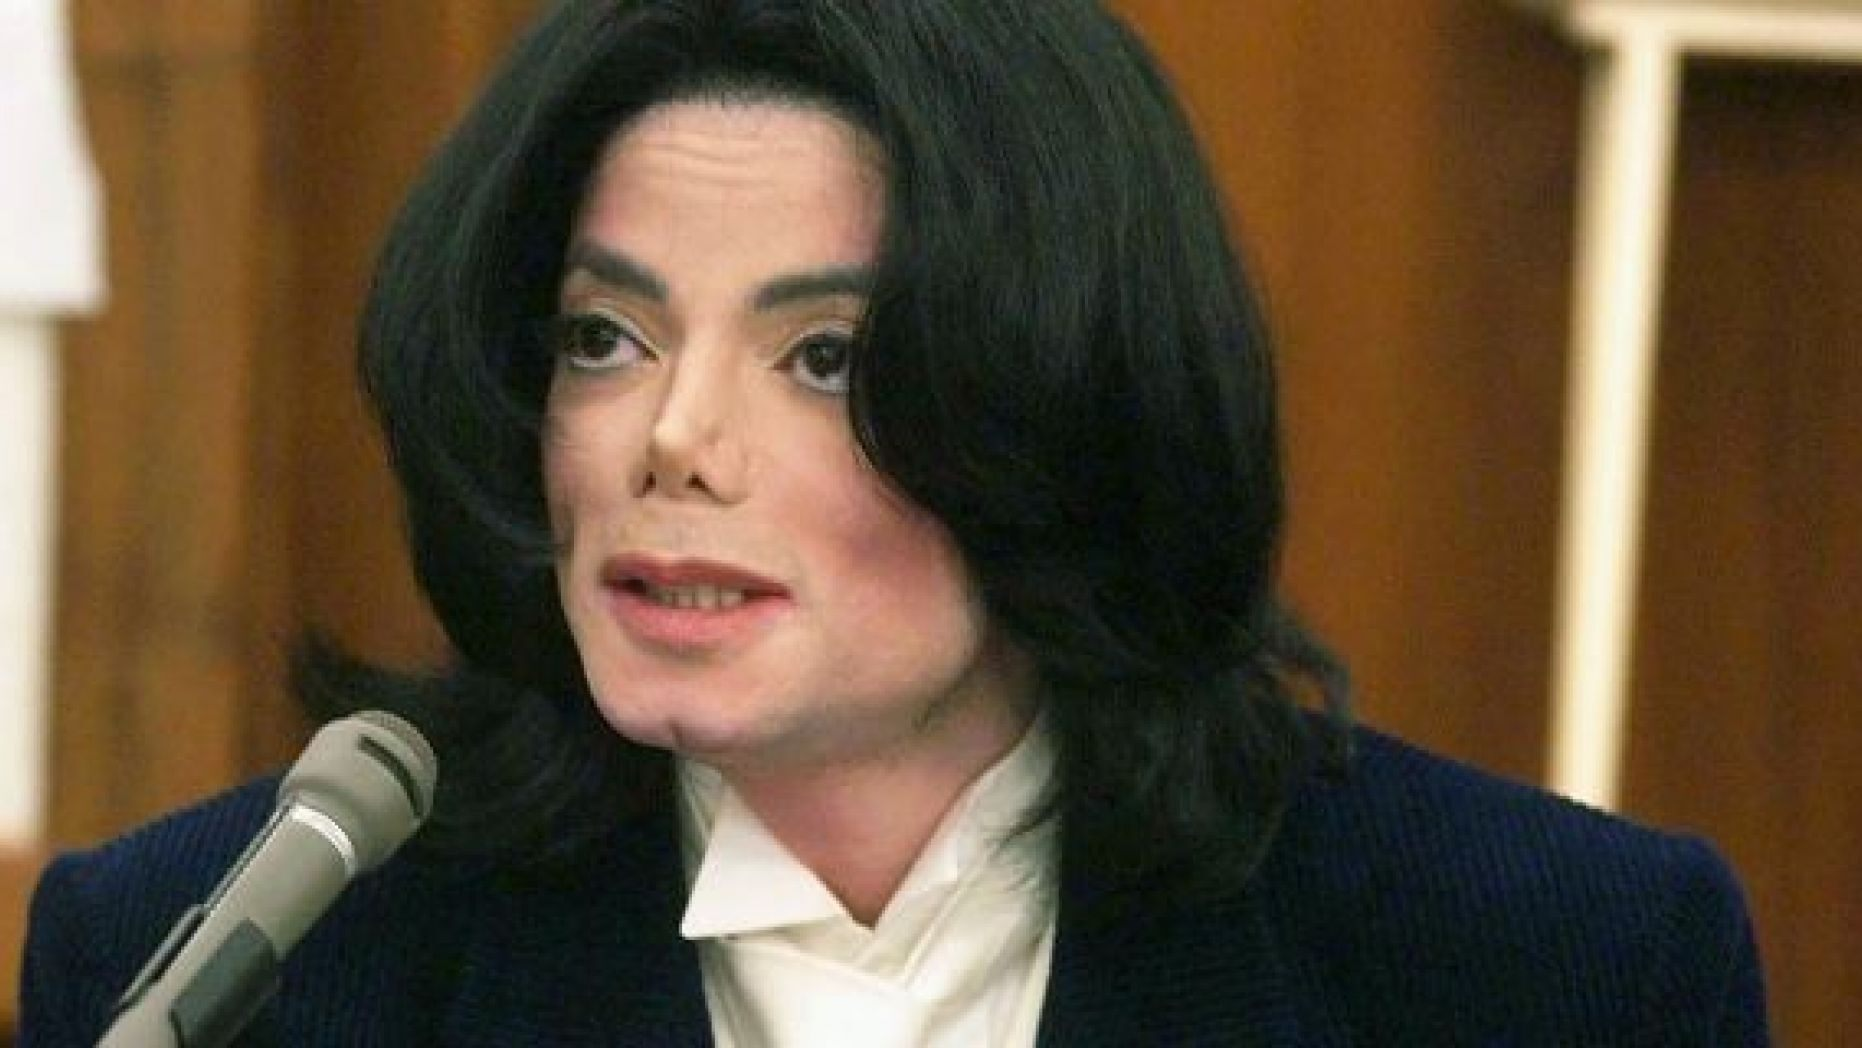 SANTA MARIA, CA - DECEMBER 3: Pop star Michael Jackson speaks with photographers during a break in his testimony December 3, 2002 in Santa Maria, California. Jackson is being sued for $21 million for breach of contract over two millennium concerts. (Photo by Jim Ruymen - Pool/Getty Images)